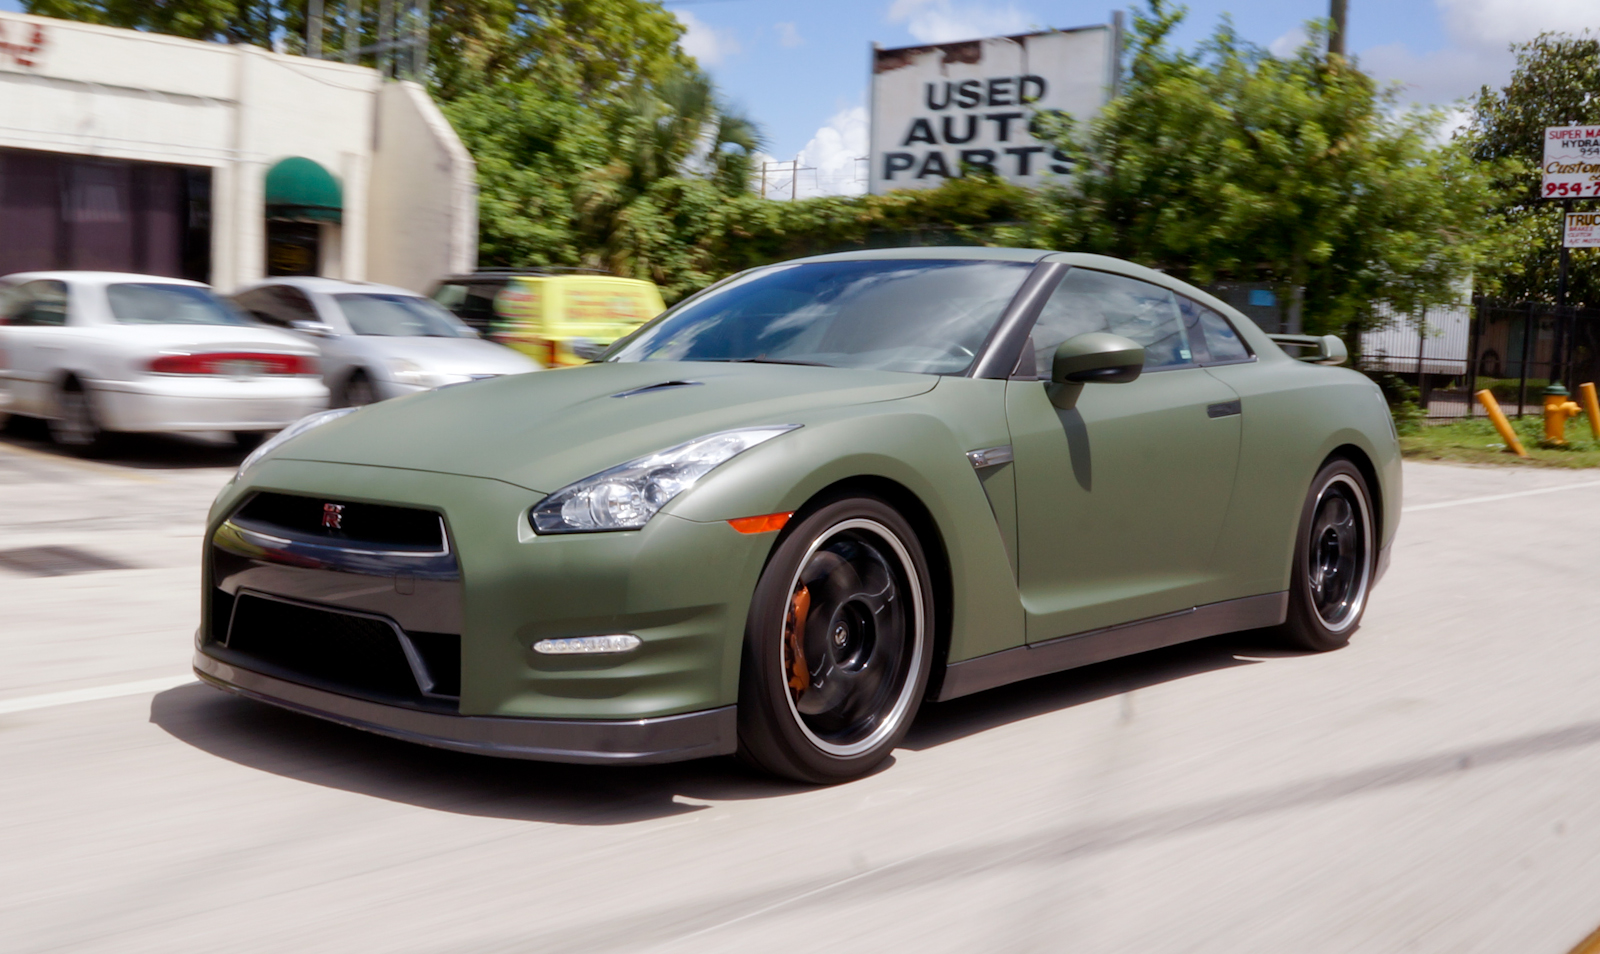 Matte Green Nissan Gtr Vehicle Wrap Miami in addition Maxresdefault in addition C Hdm A additionally Mercedes Benz Series Sprinter High Roof Crew Van With Rear Ac besides Cadillac Xts Ny Limo Airport Car Service Interior X. on 2015 mercedes sprinter passenger van